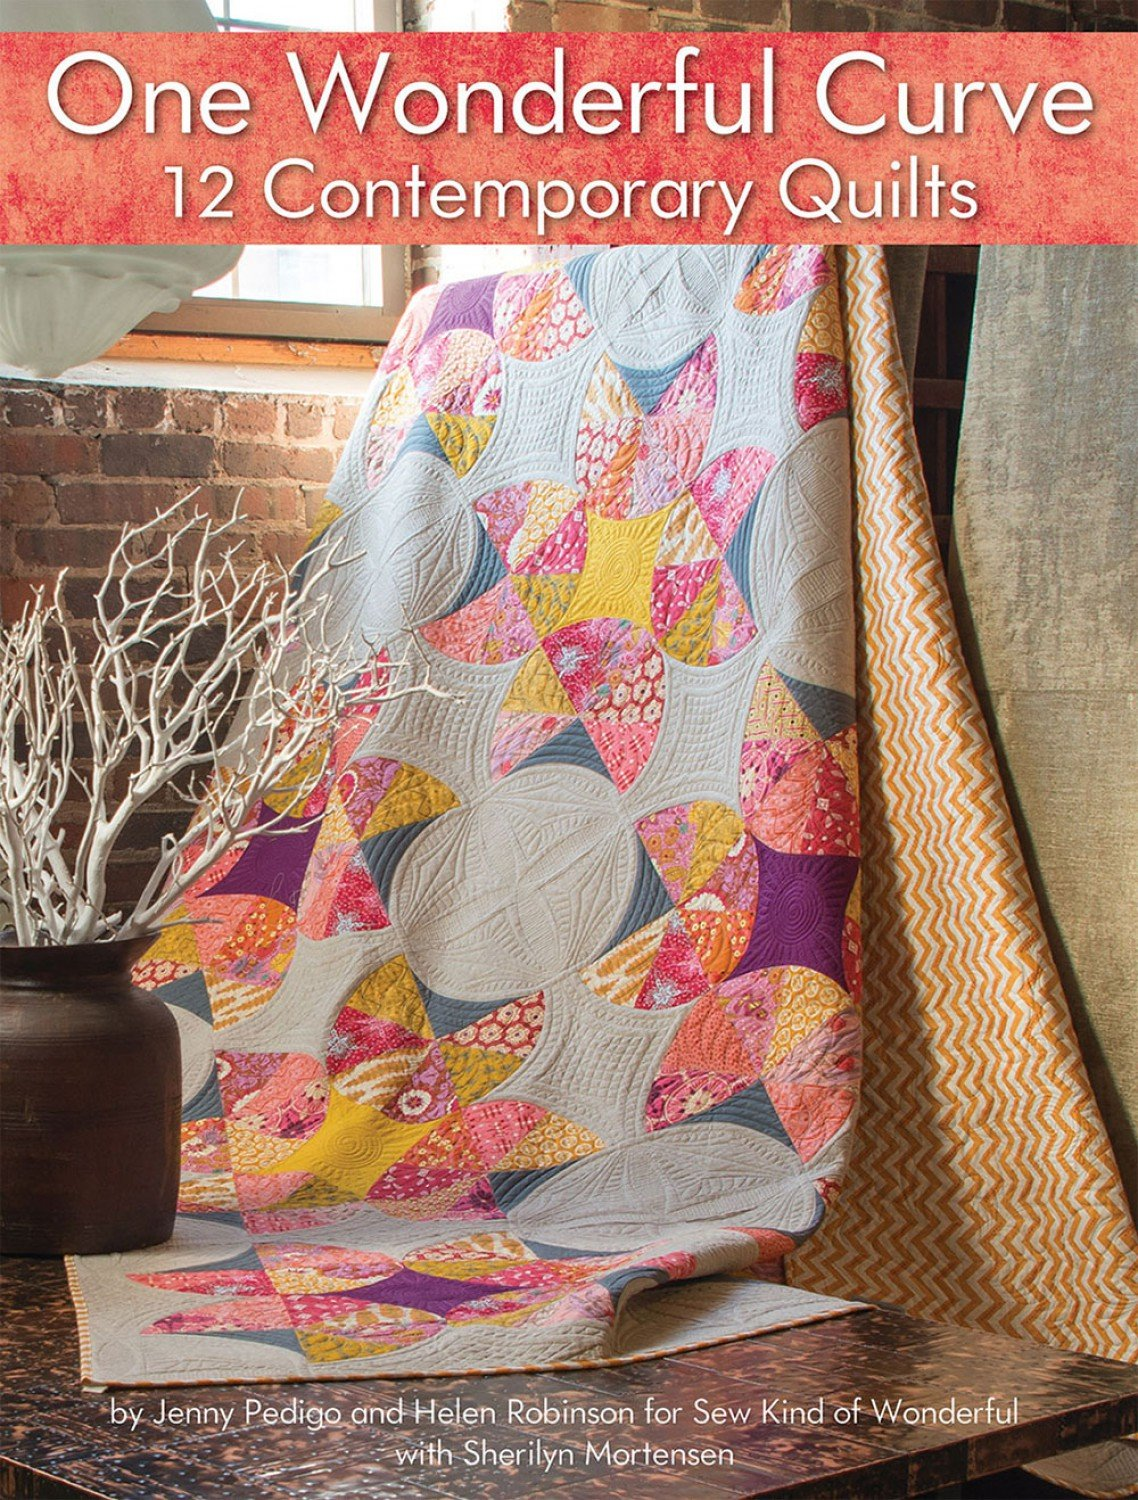 One Wonderful Curve: 12 Contemporary Quilts